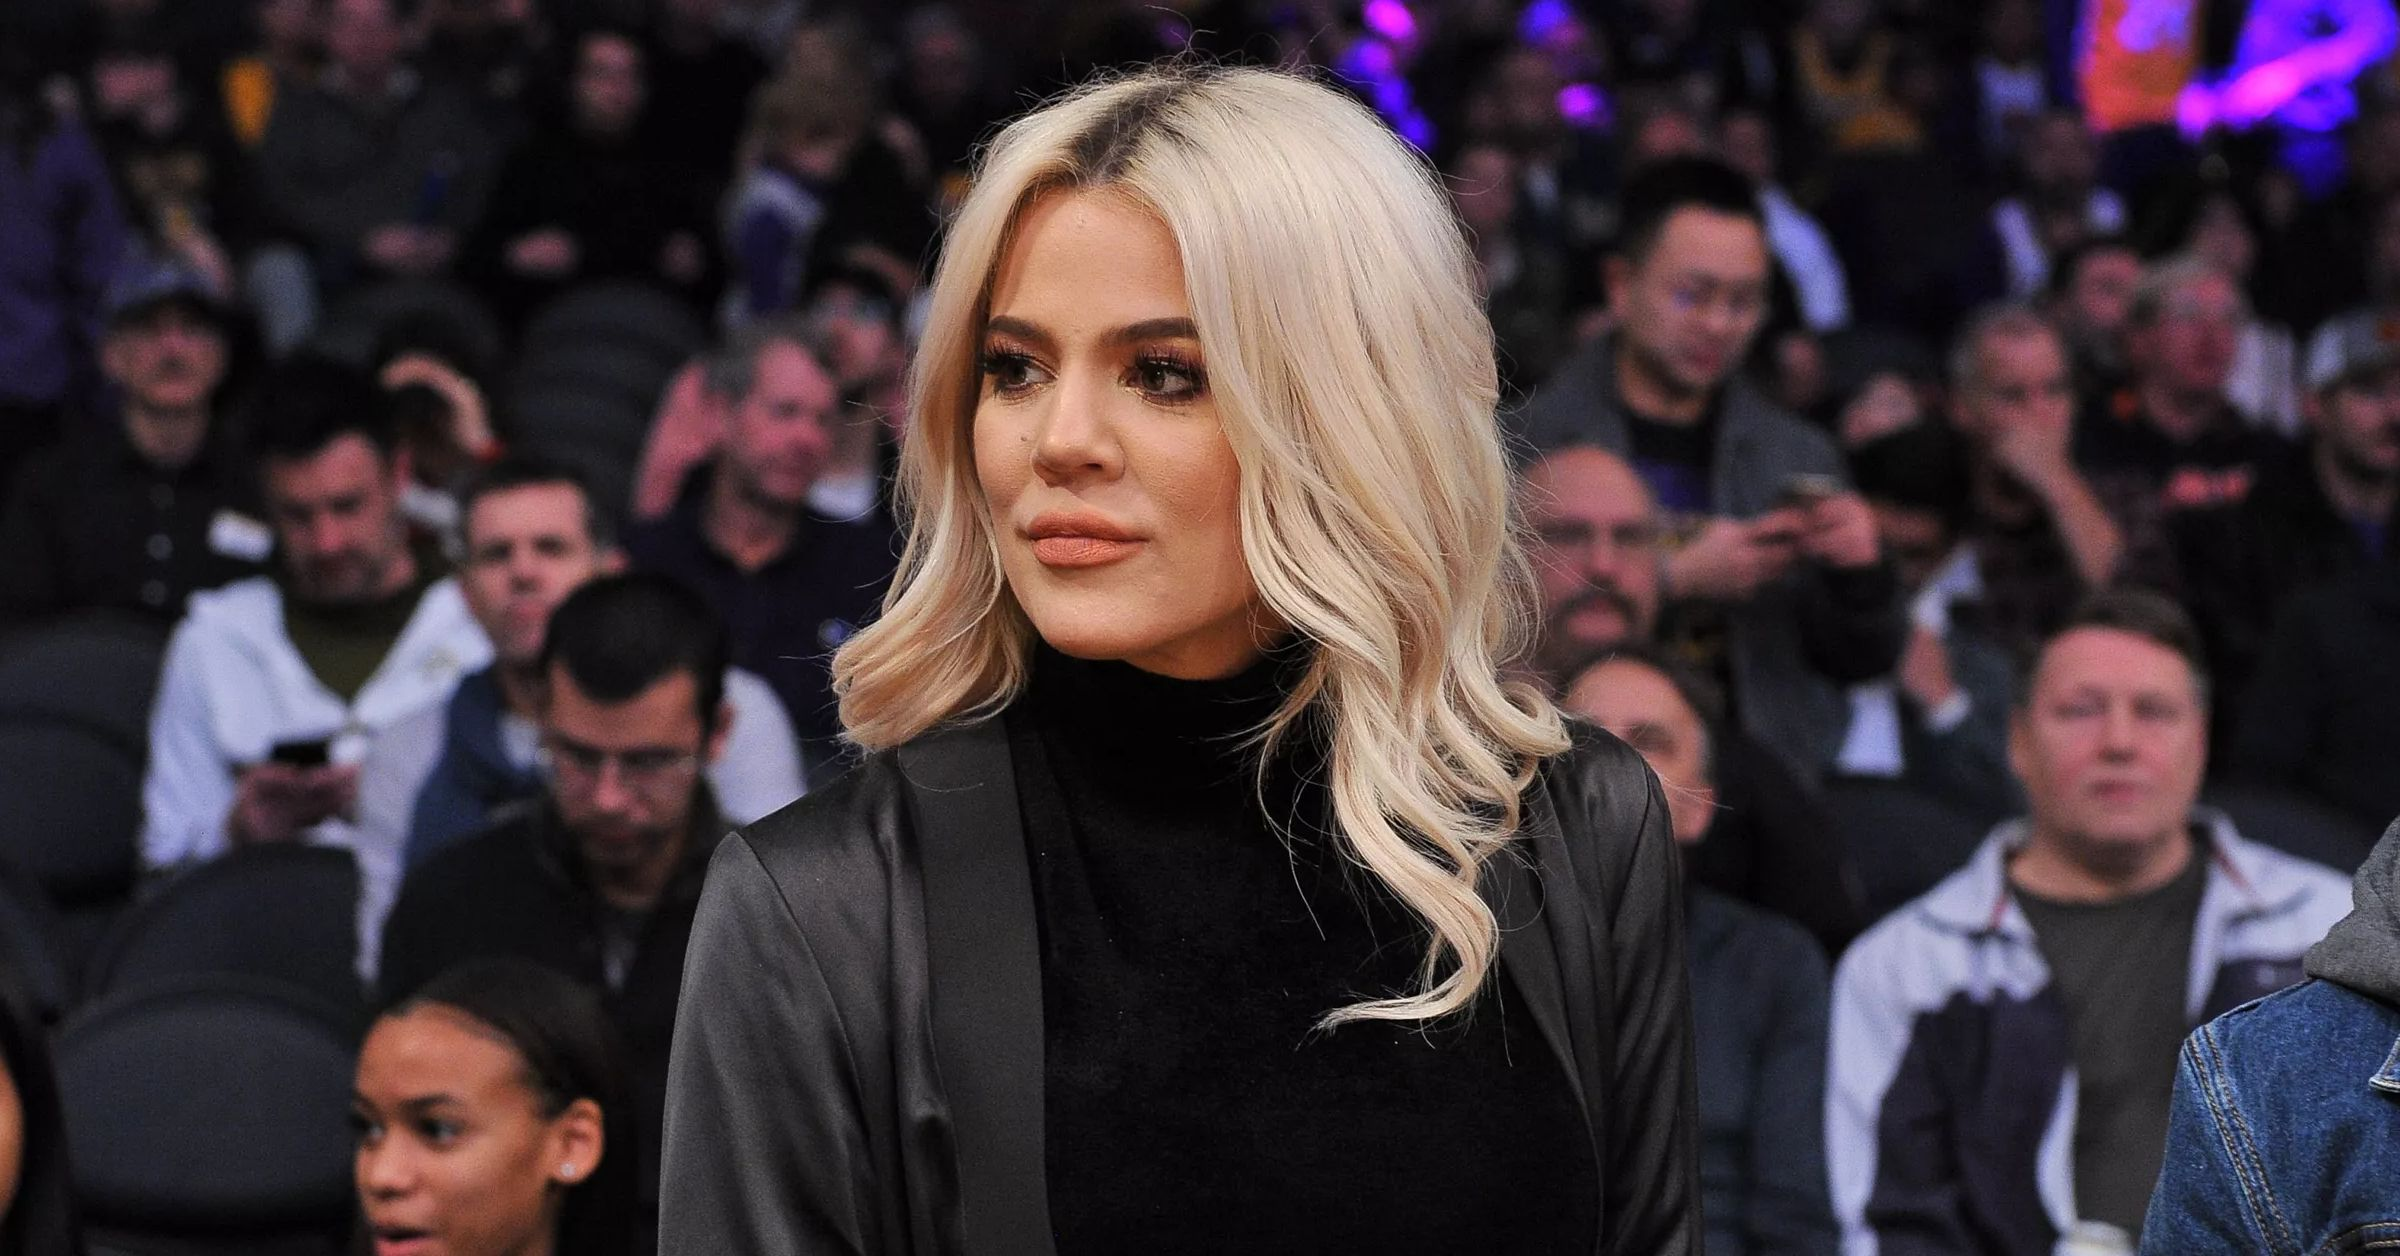 Khloe Kardashian Wants Tristan Thompson Back in Her Life Only For One Reason